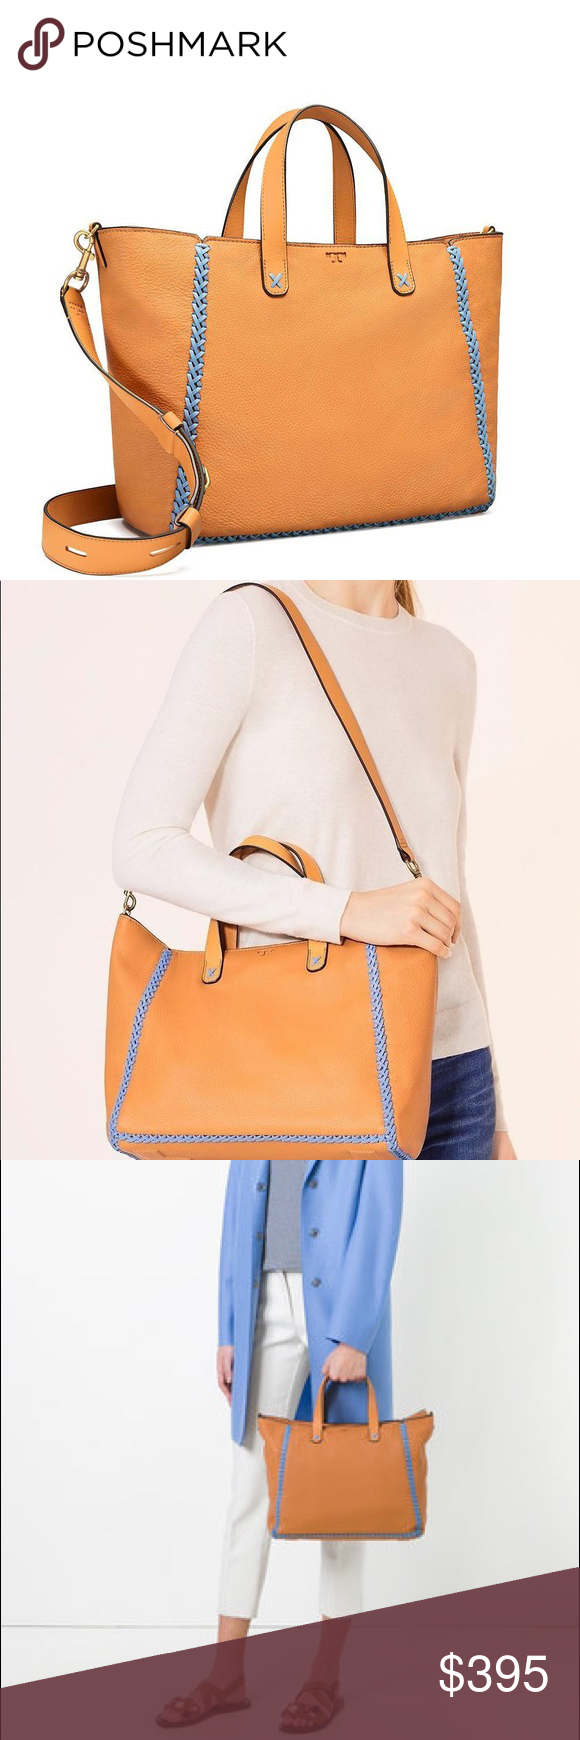 7ae854070c0 TORY BURCH Medium Whipstitch Leather Tote DETAILS  amp  CARE Color-pop  whipstitching livens up